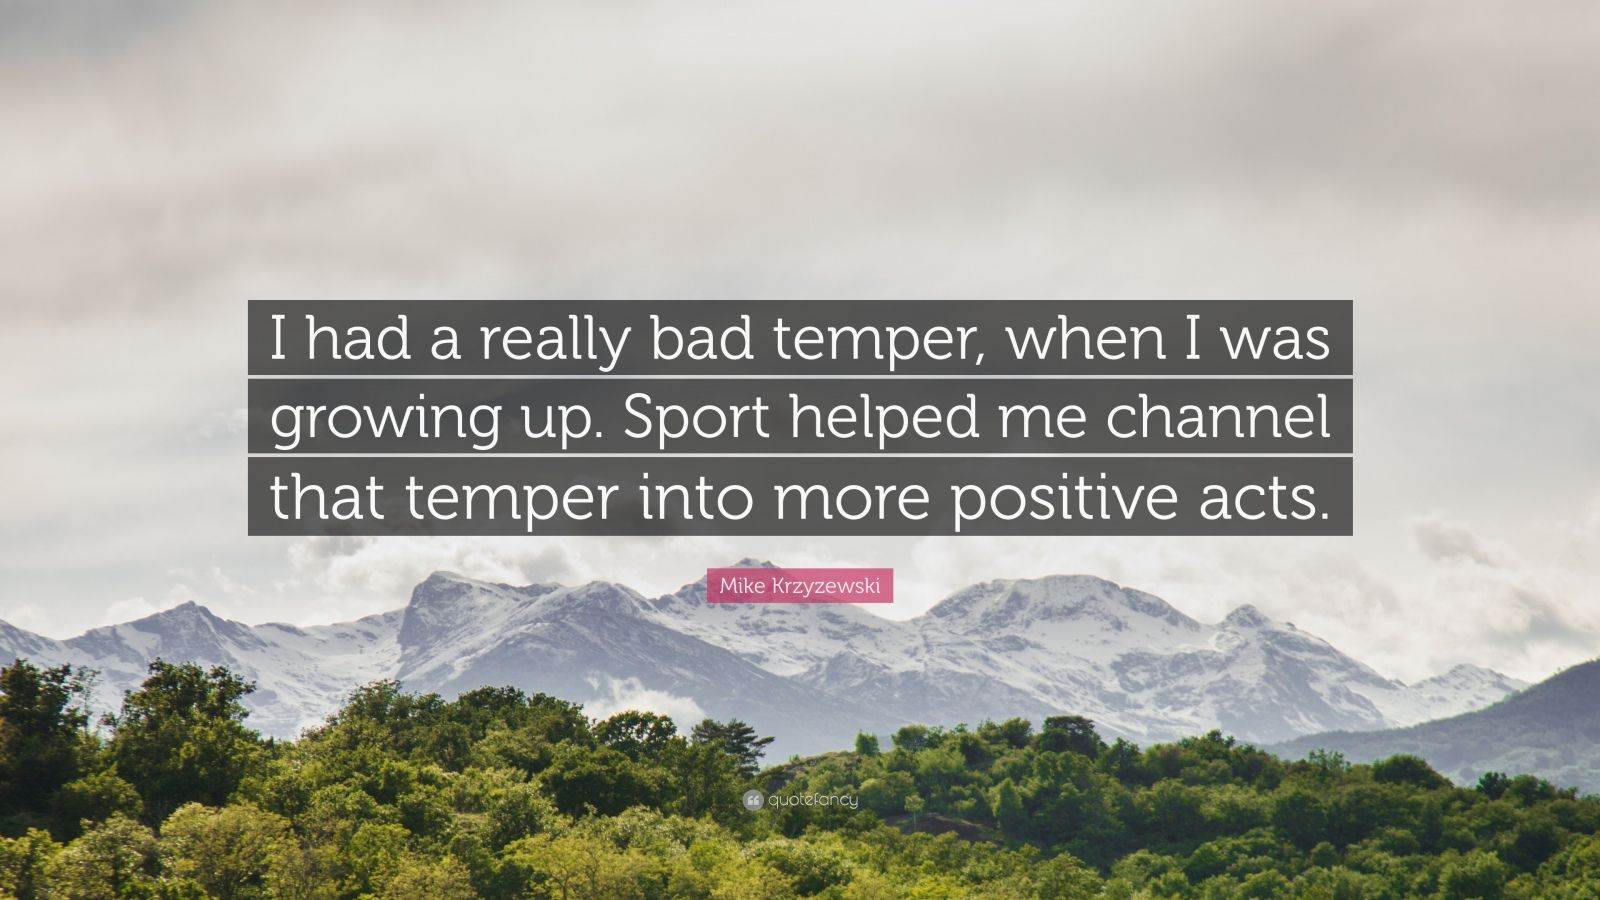 """Mike Krzyzewski Quote: """"I had a really bad temper, when I was growing up. Sport helped me channel that temper into more positive acts."""""""